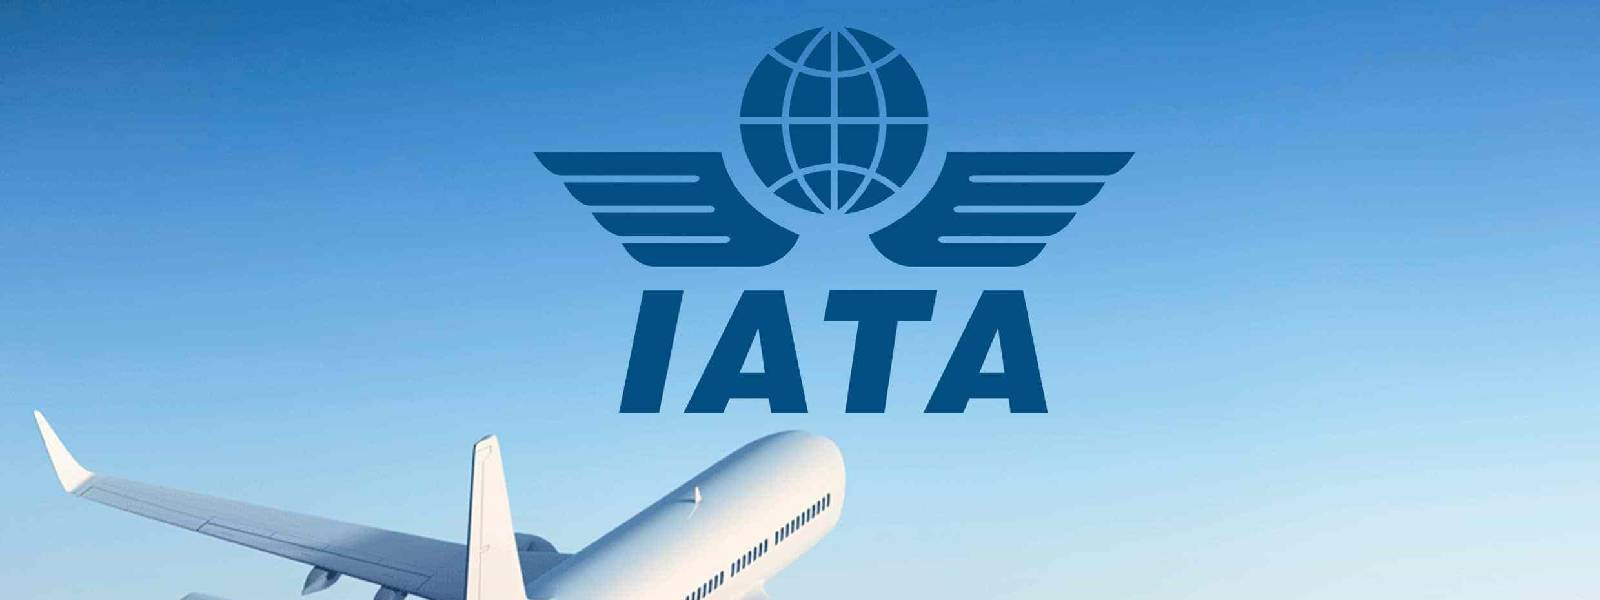 Sri Lanka's aviation industry to lose USD 715 mn due to COVID-19